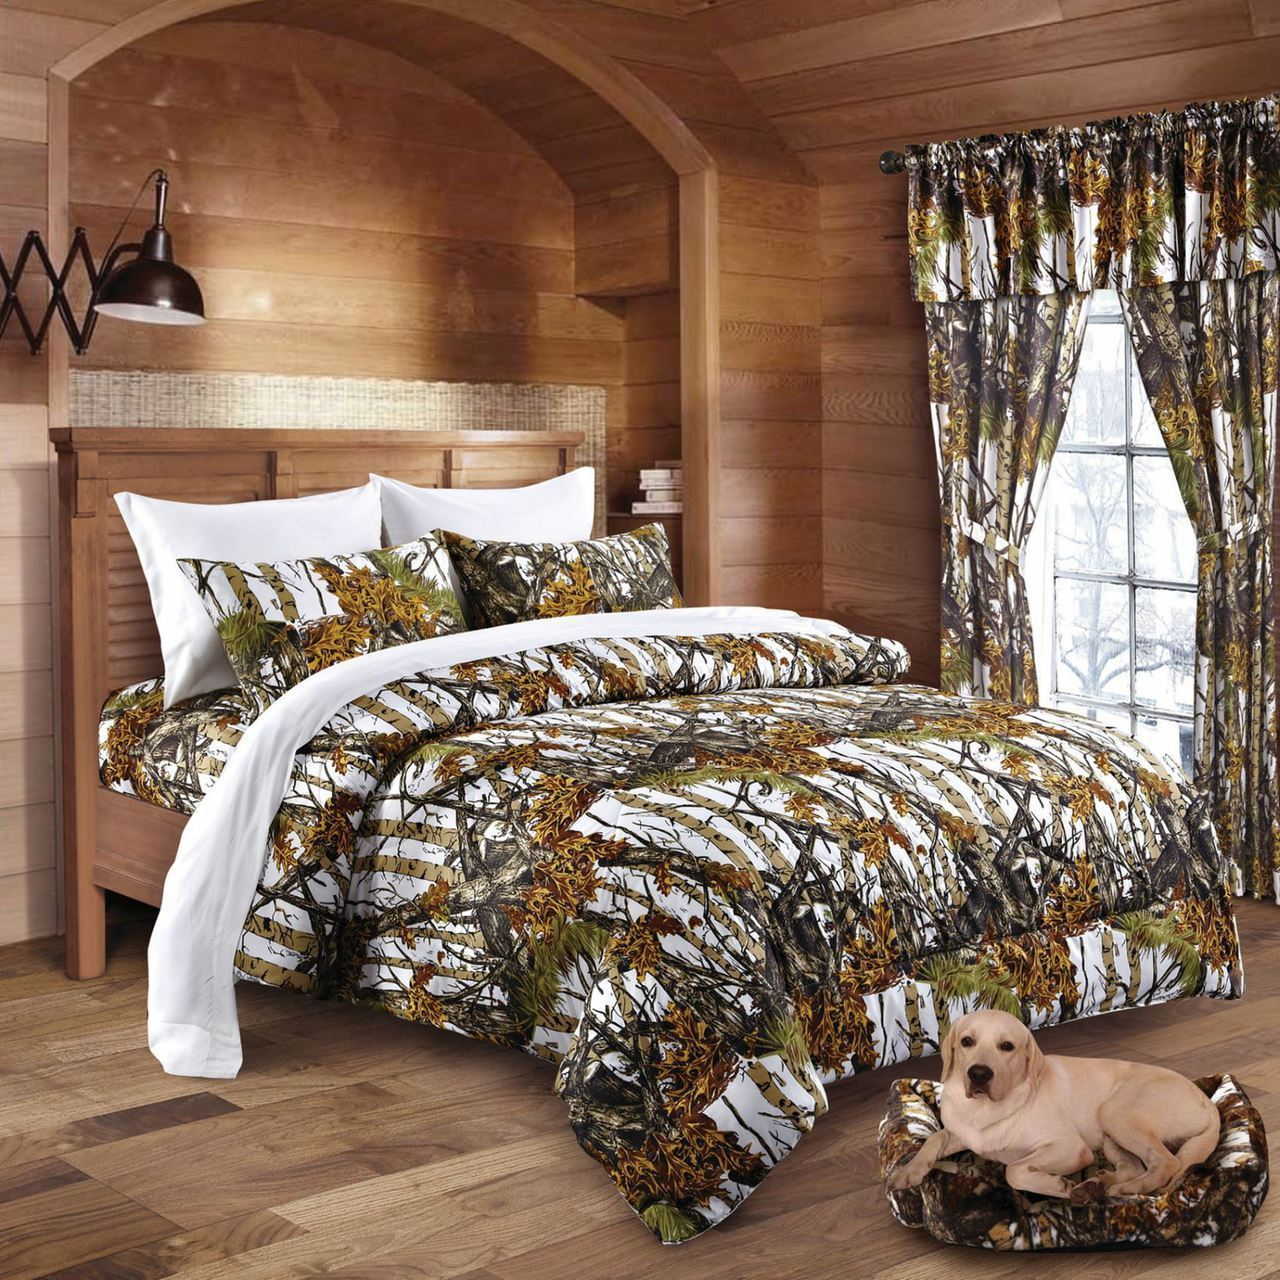 nextag products compare camo bed bedding pillowcases twin green sheet xtra sheets rtxgsht shopping at realtree set prices